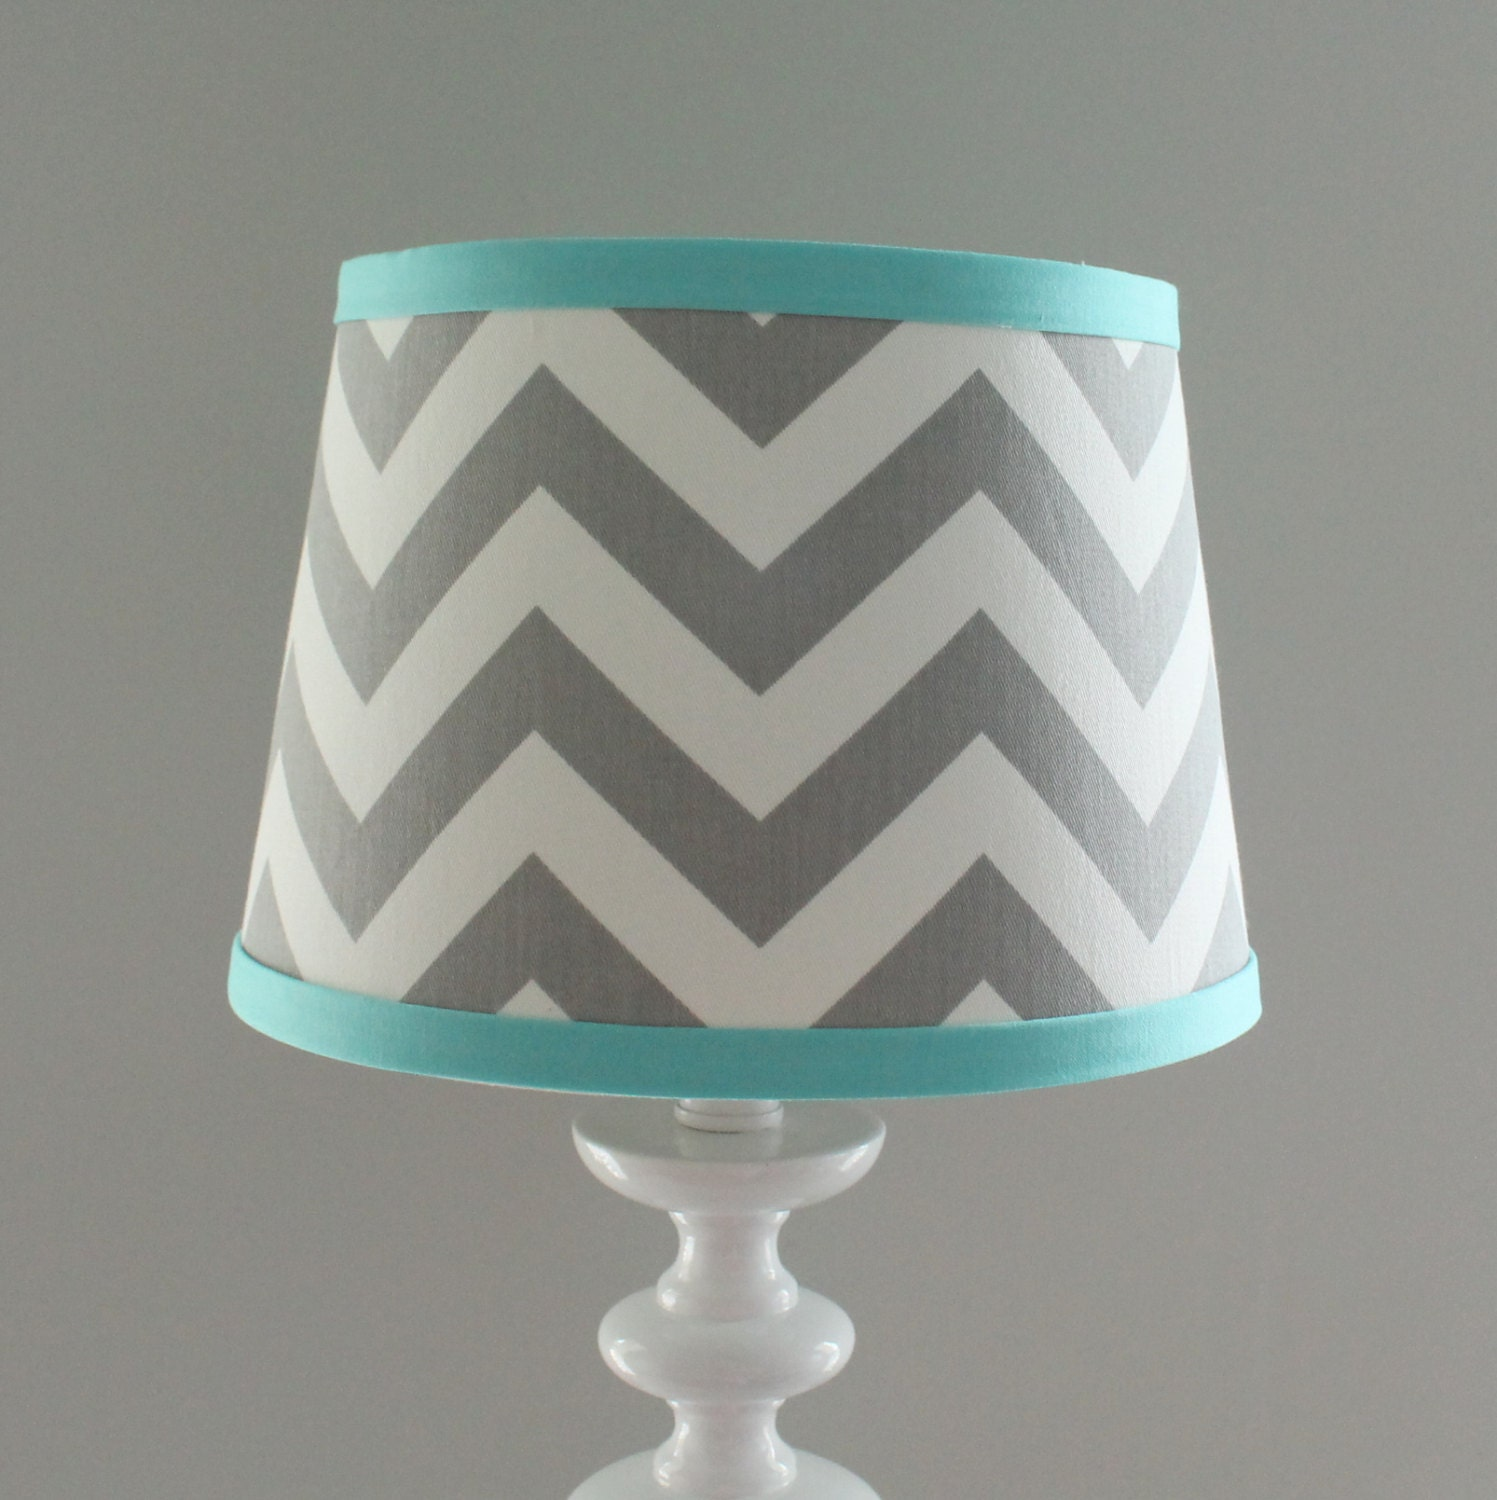 htm textured glass rippled table aqua striped maya base ceramic frosted blue bookmark lamp